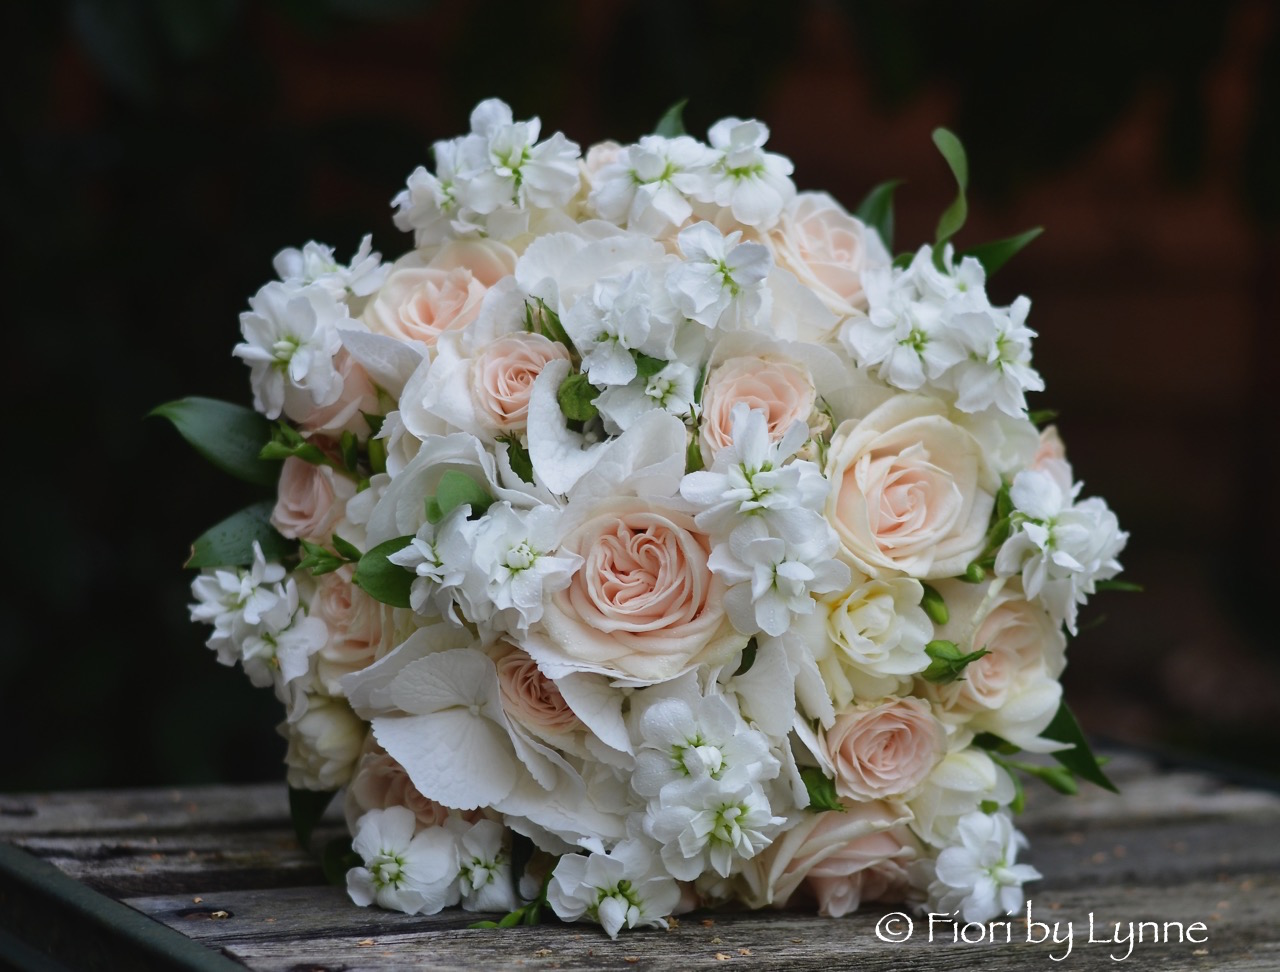 White Wedding Flowers In August August Wedding Flowers Can Have